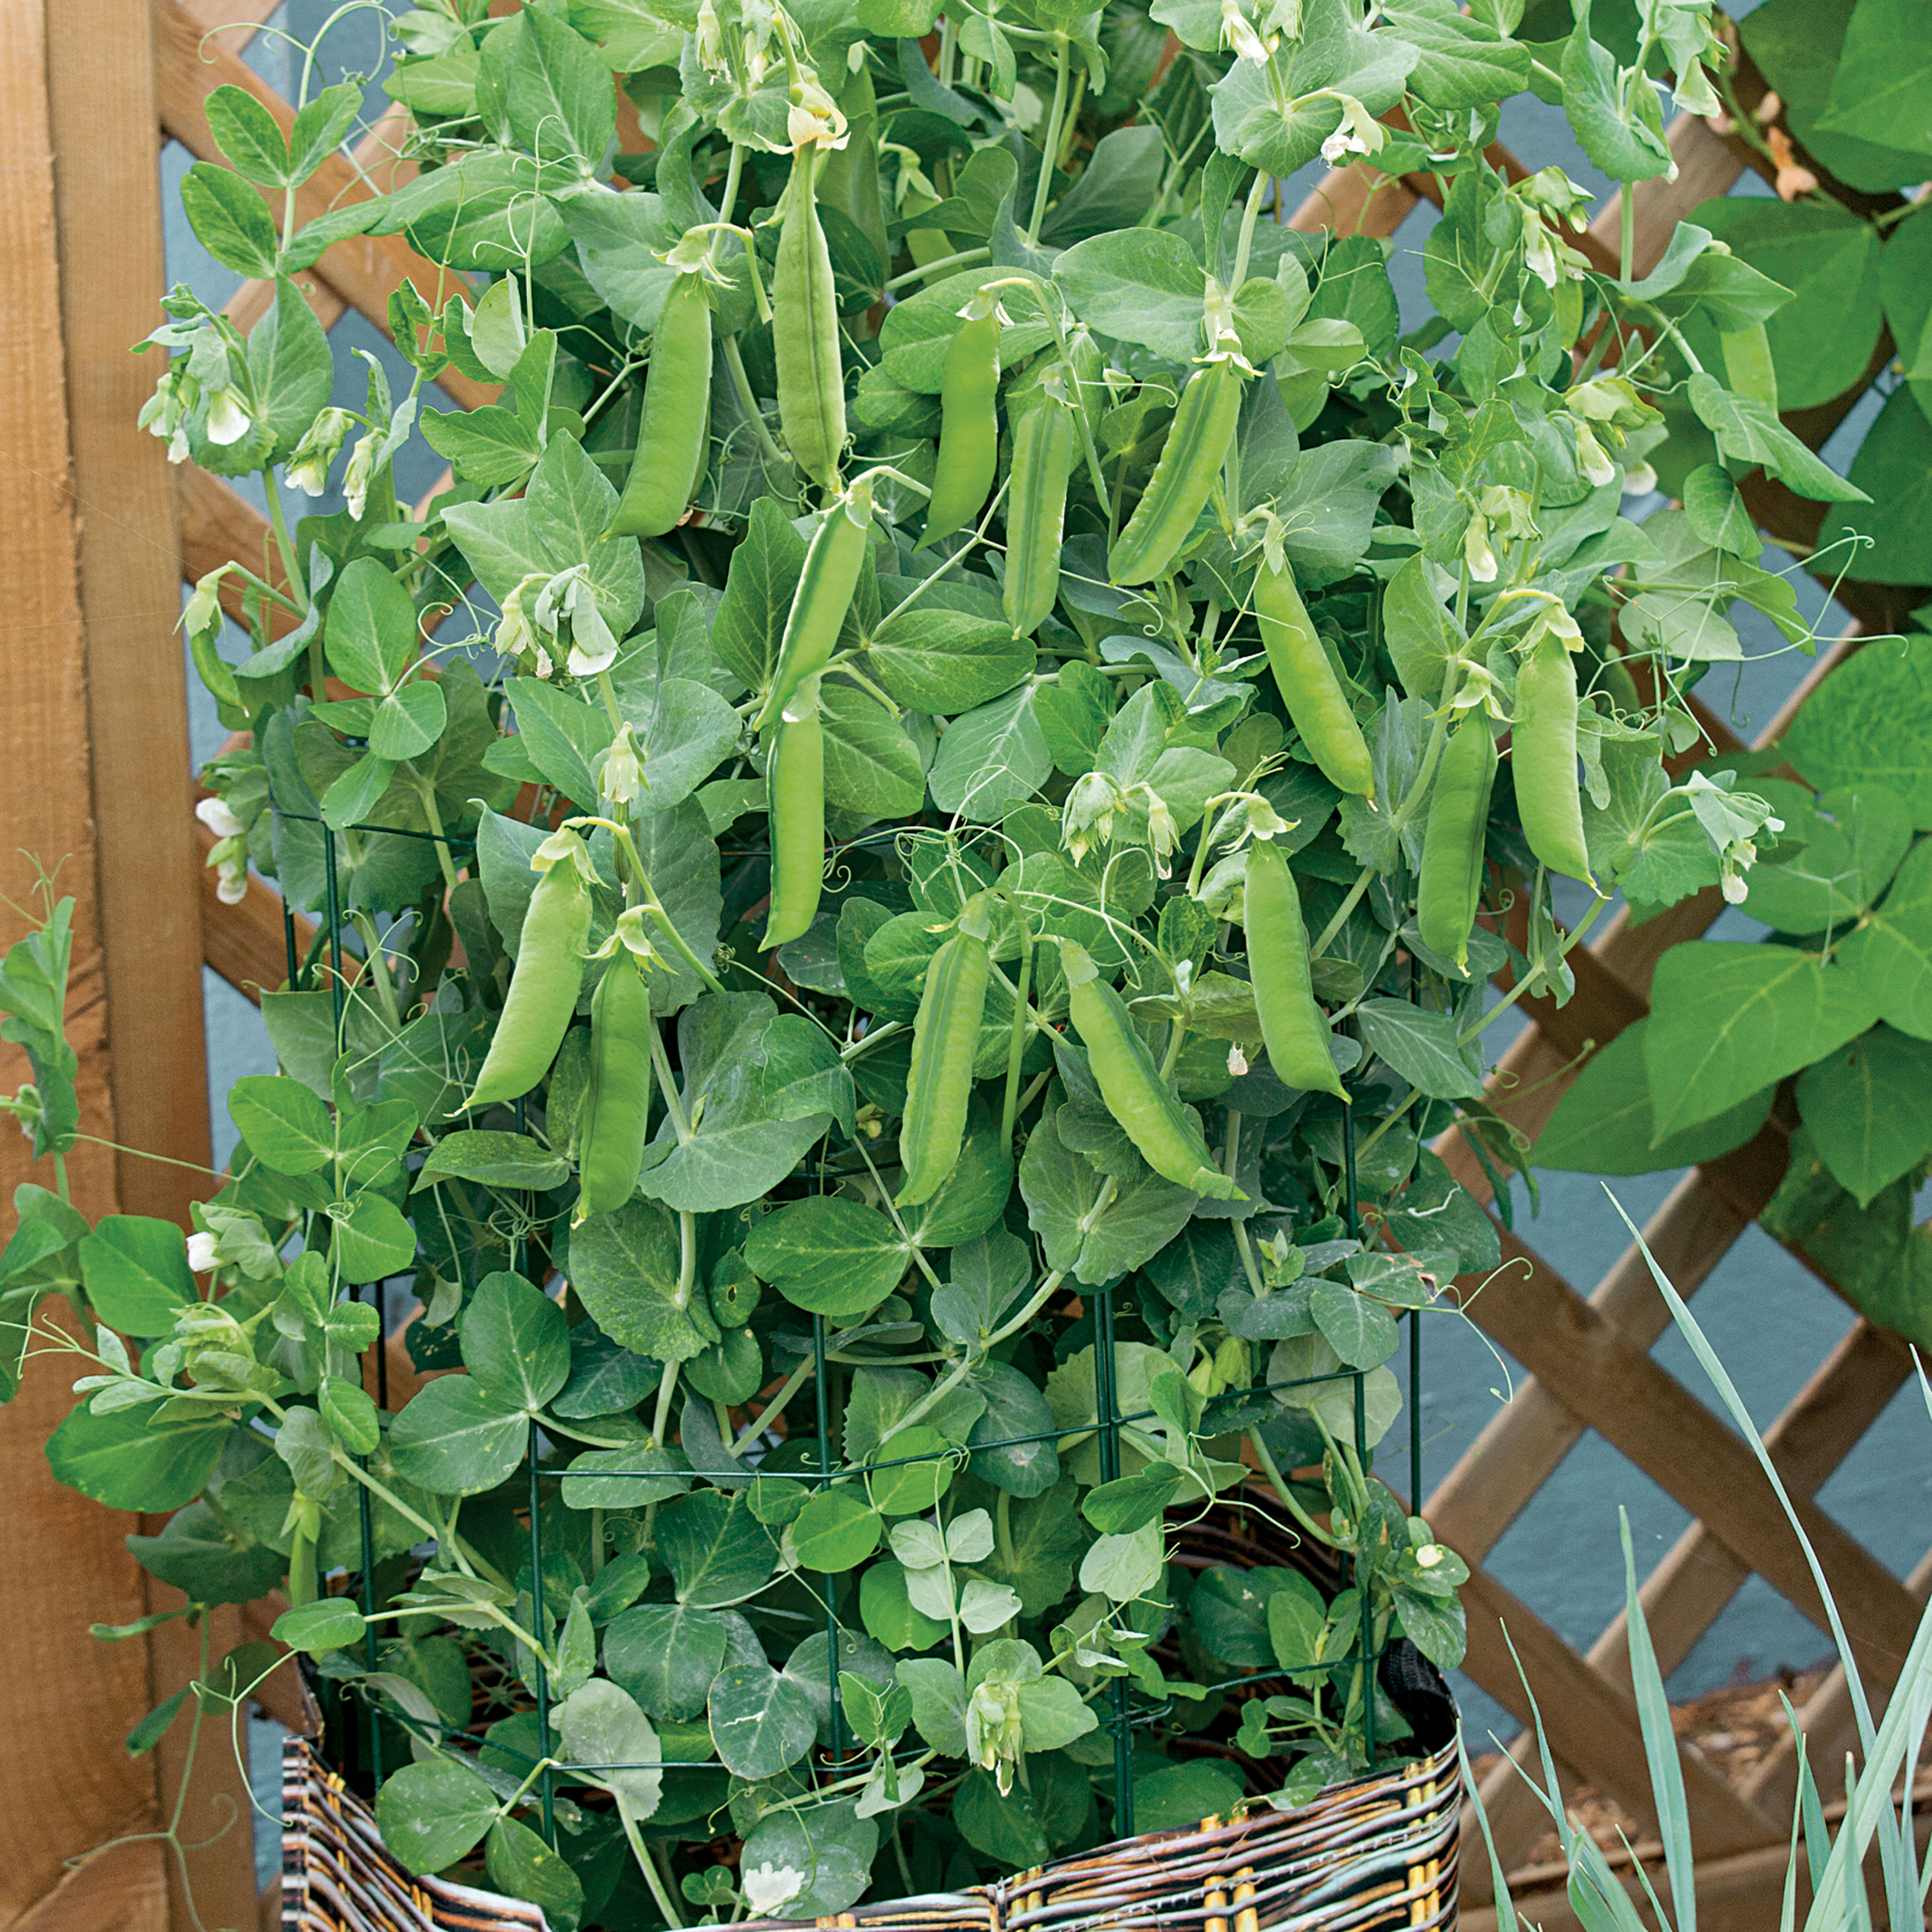 Patio Pride Pea Seeds.